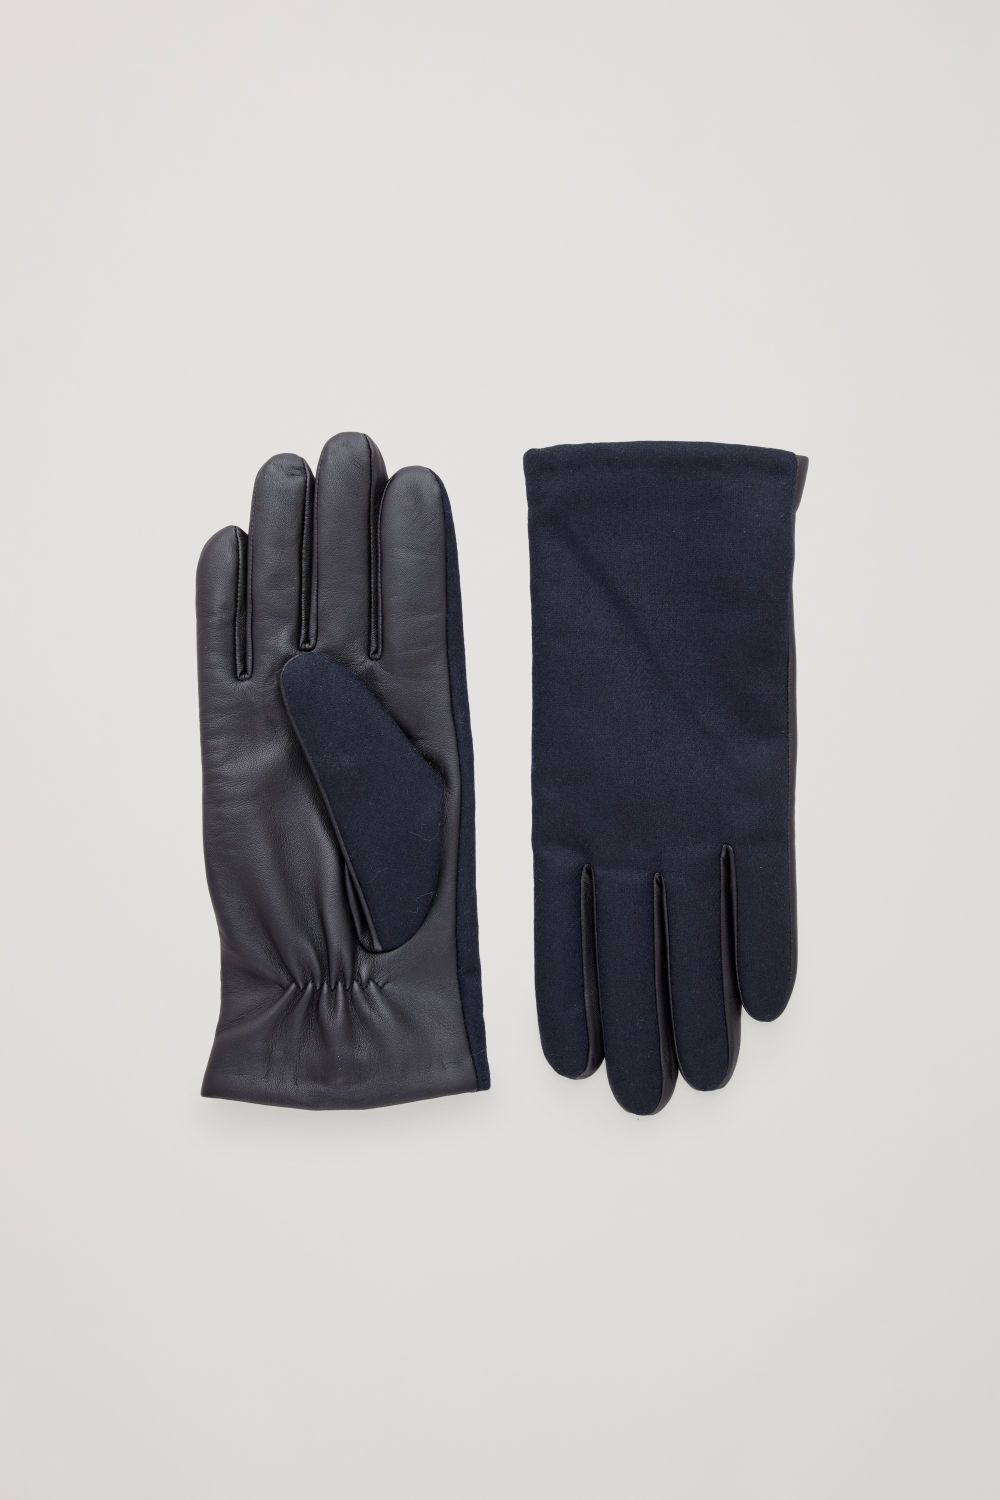 코스 COS LEATHER AND WOOL GLOVES,Navy \/ black